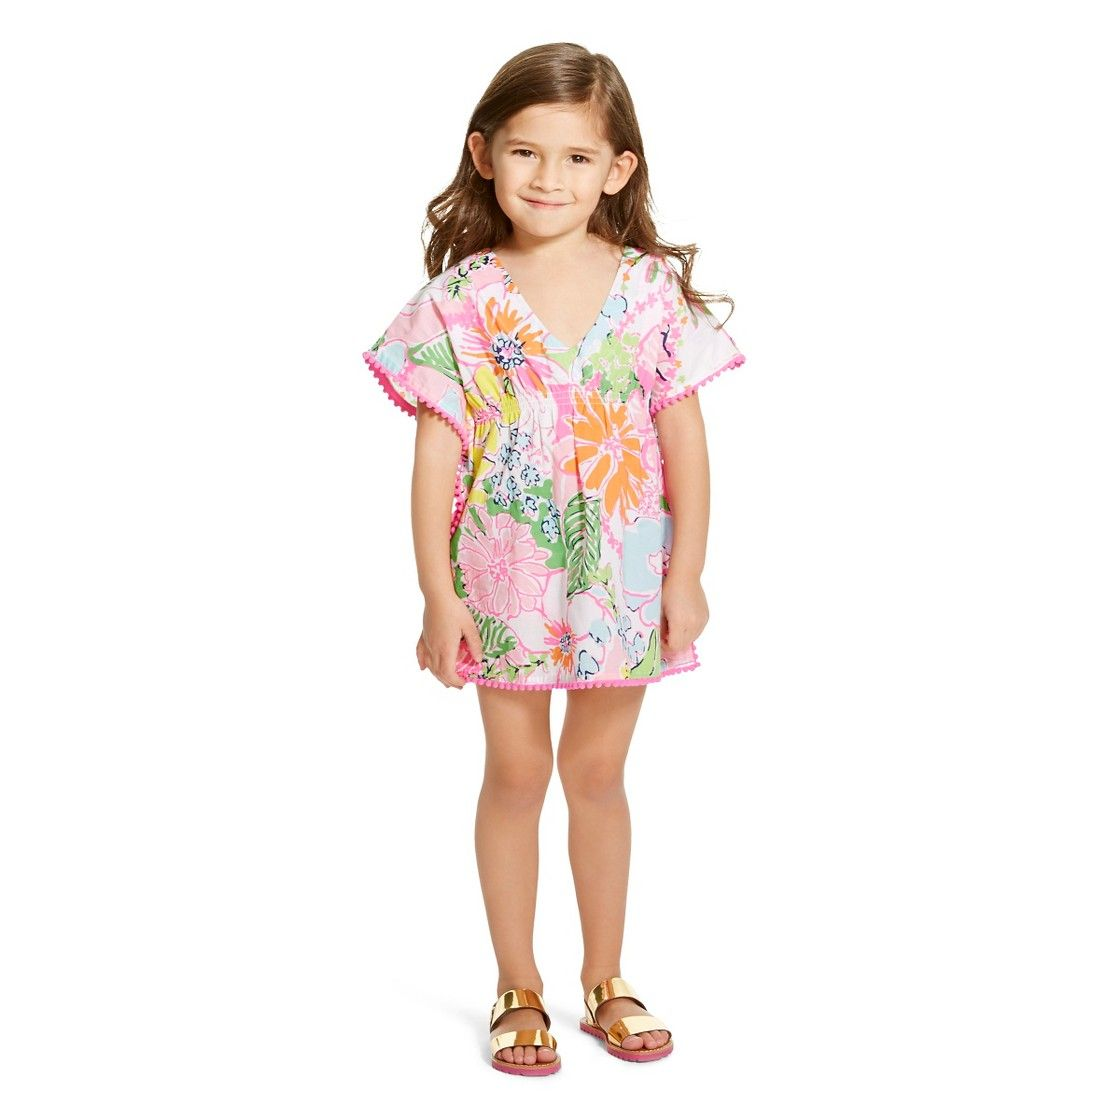 b9a6658cac Lilly Pulitzer for Target Infant Toddler Girls  Cover-Up - Nosie Posey